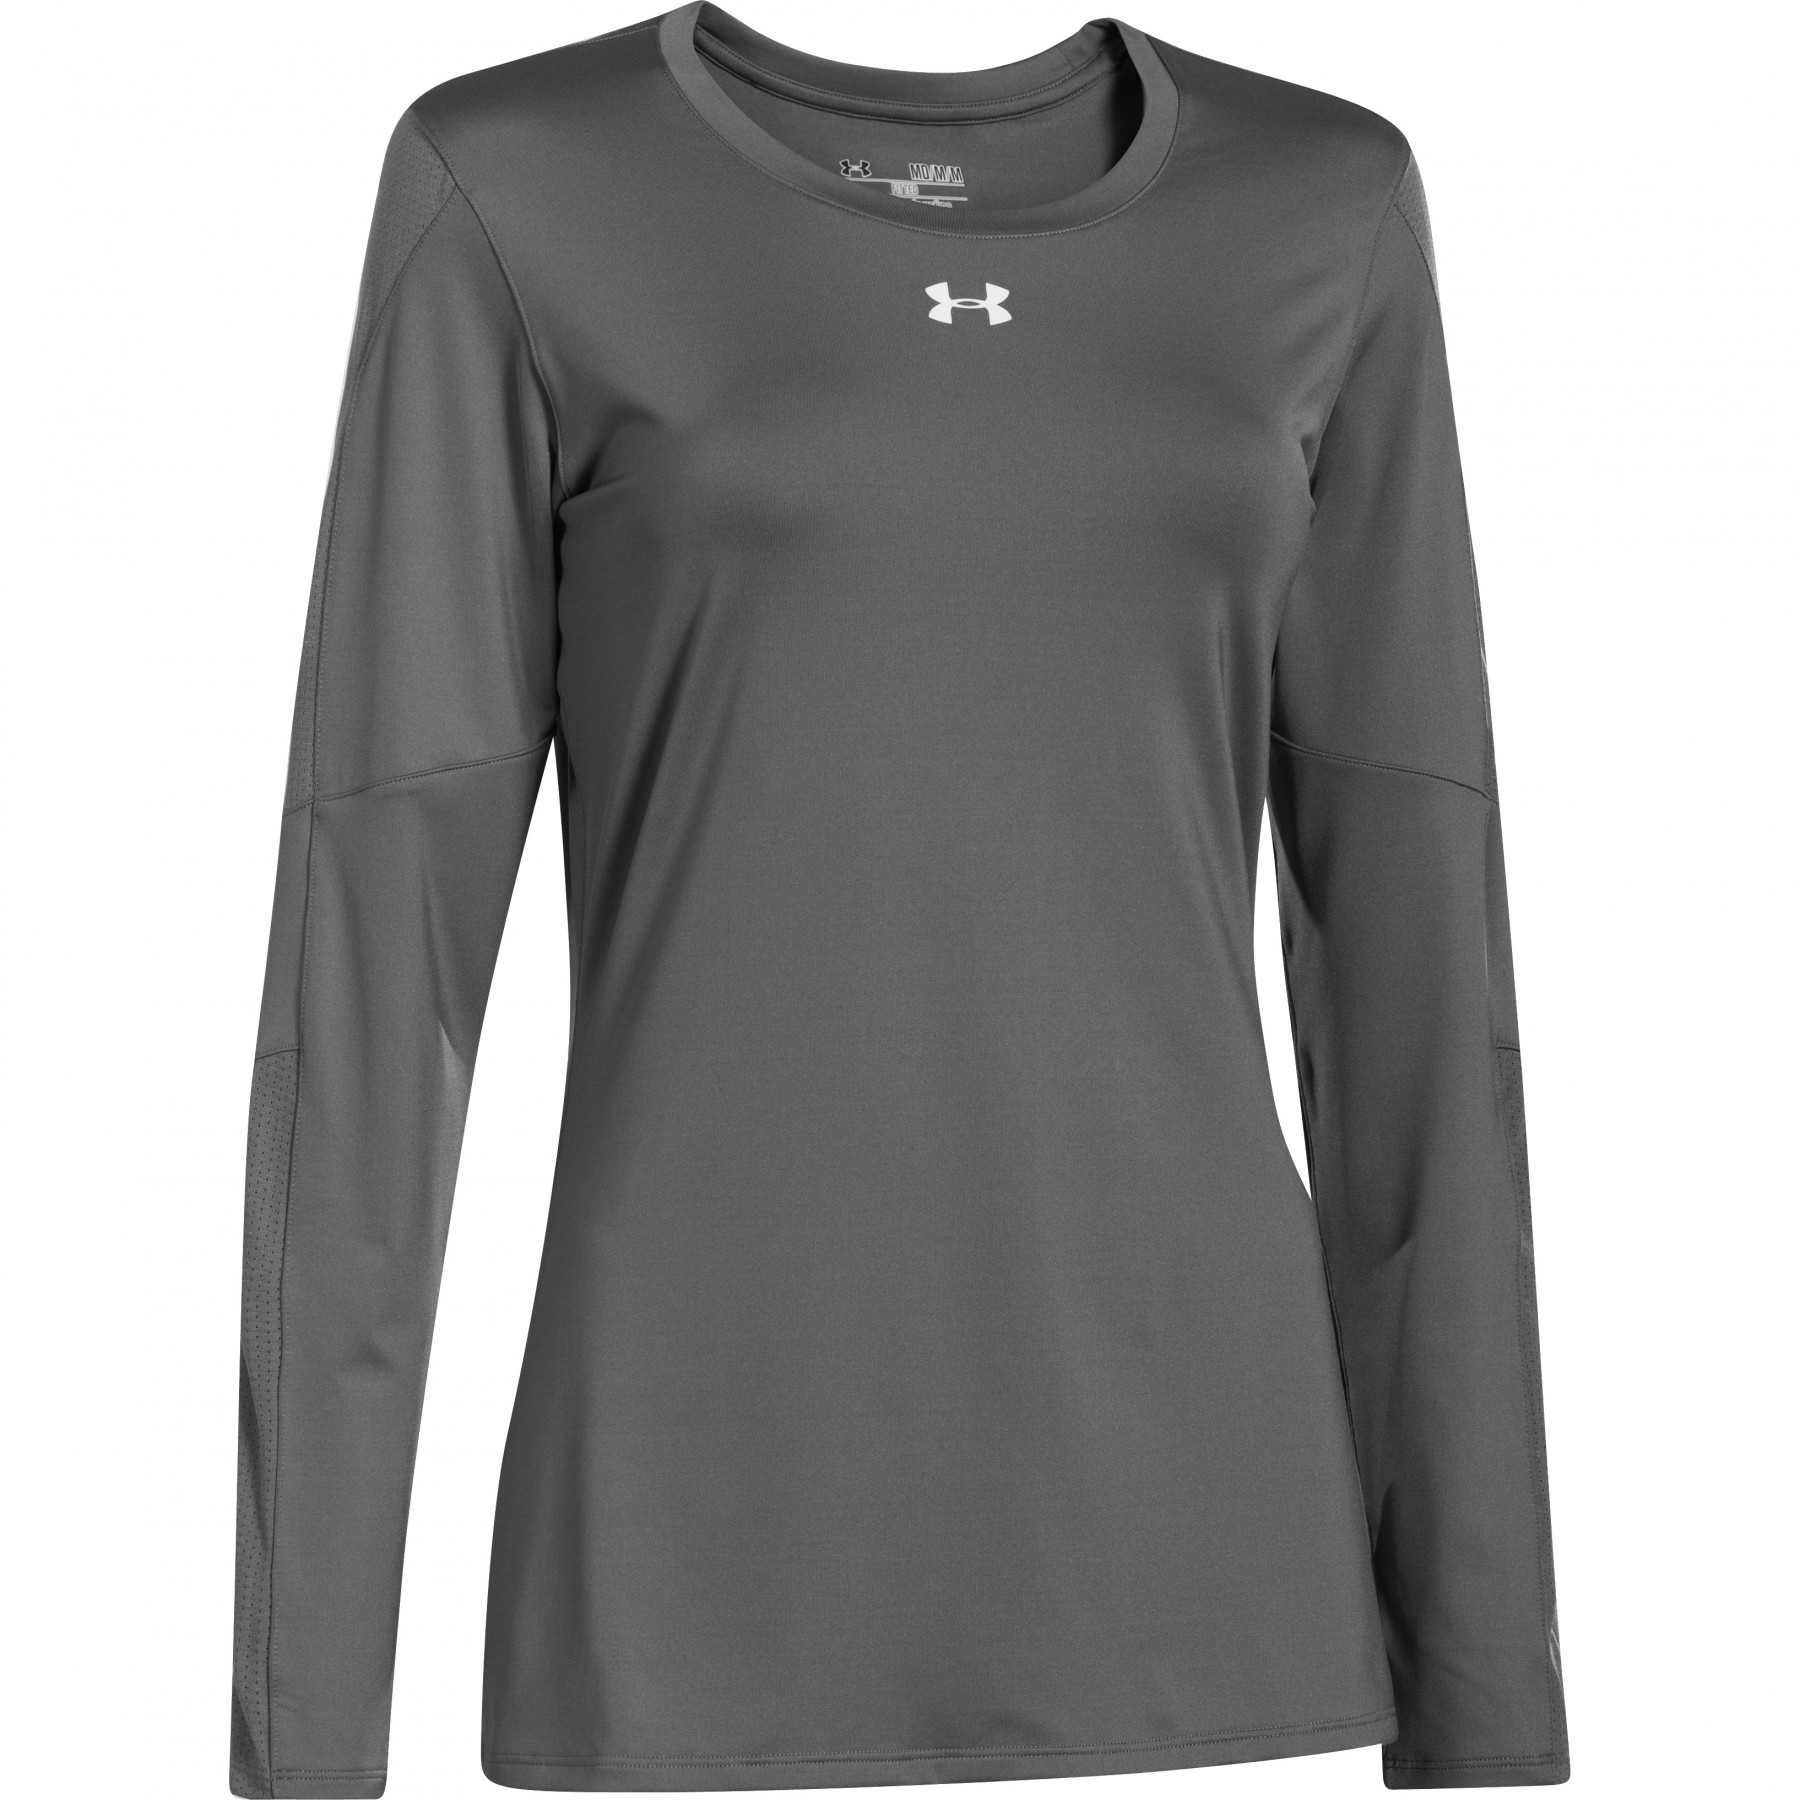 654de28153d Under Armour Womens Block Party Longsleeve Volleyball Top 1259048